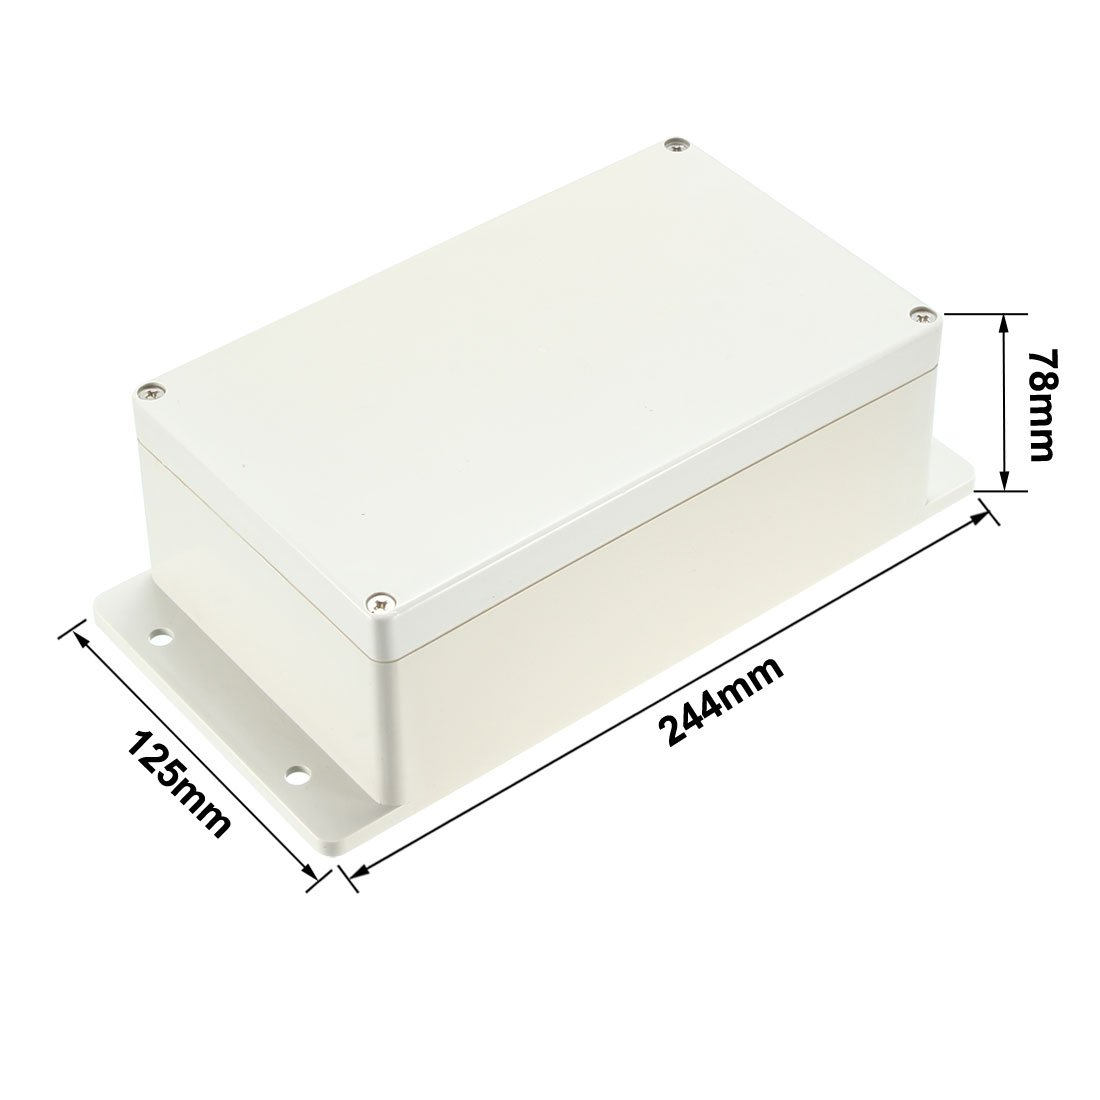 uxcell 136x72x54mm Electronic Waterproof IP65 Sealed ABS Plastic DIY Junction Box Enclosure Case Clear a18051700ux0356